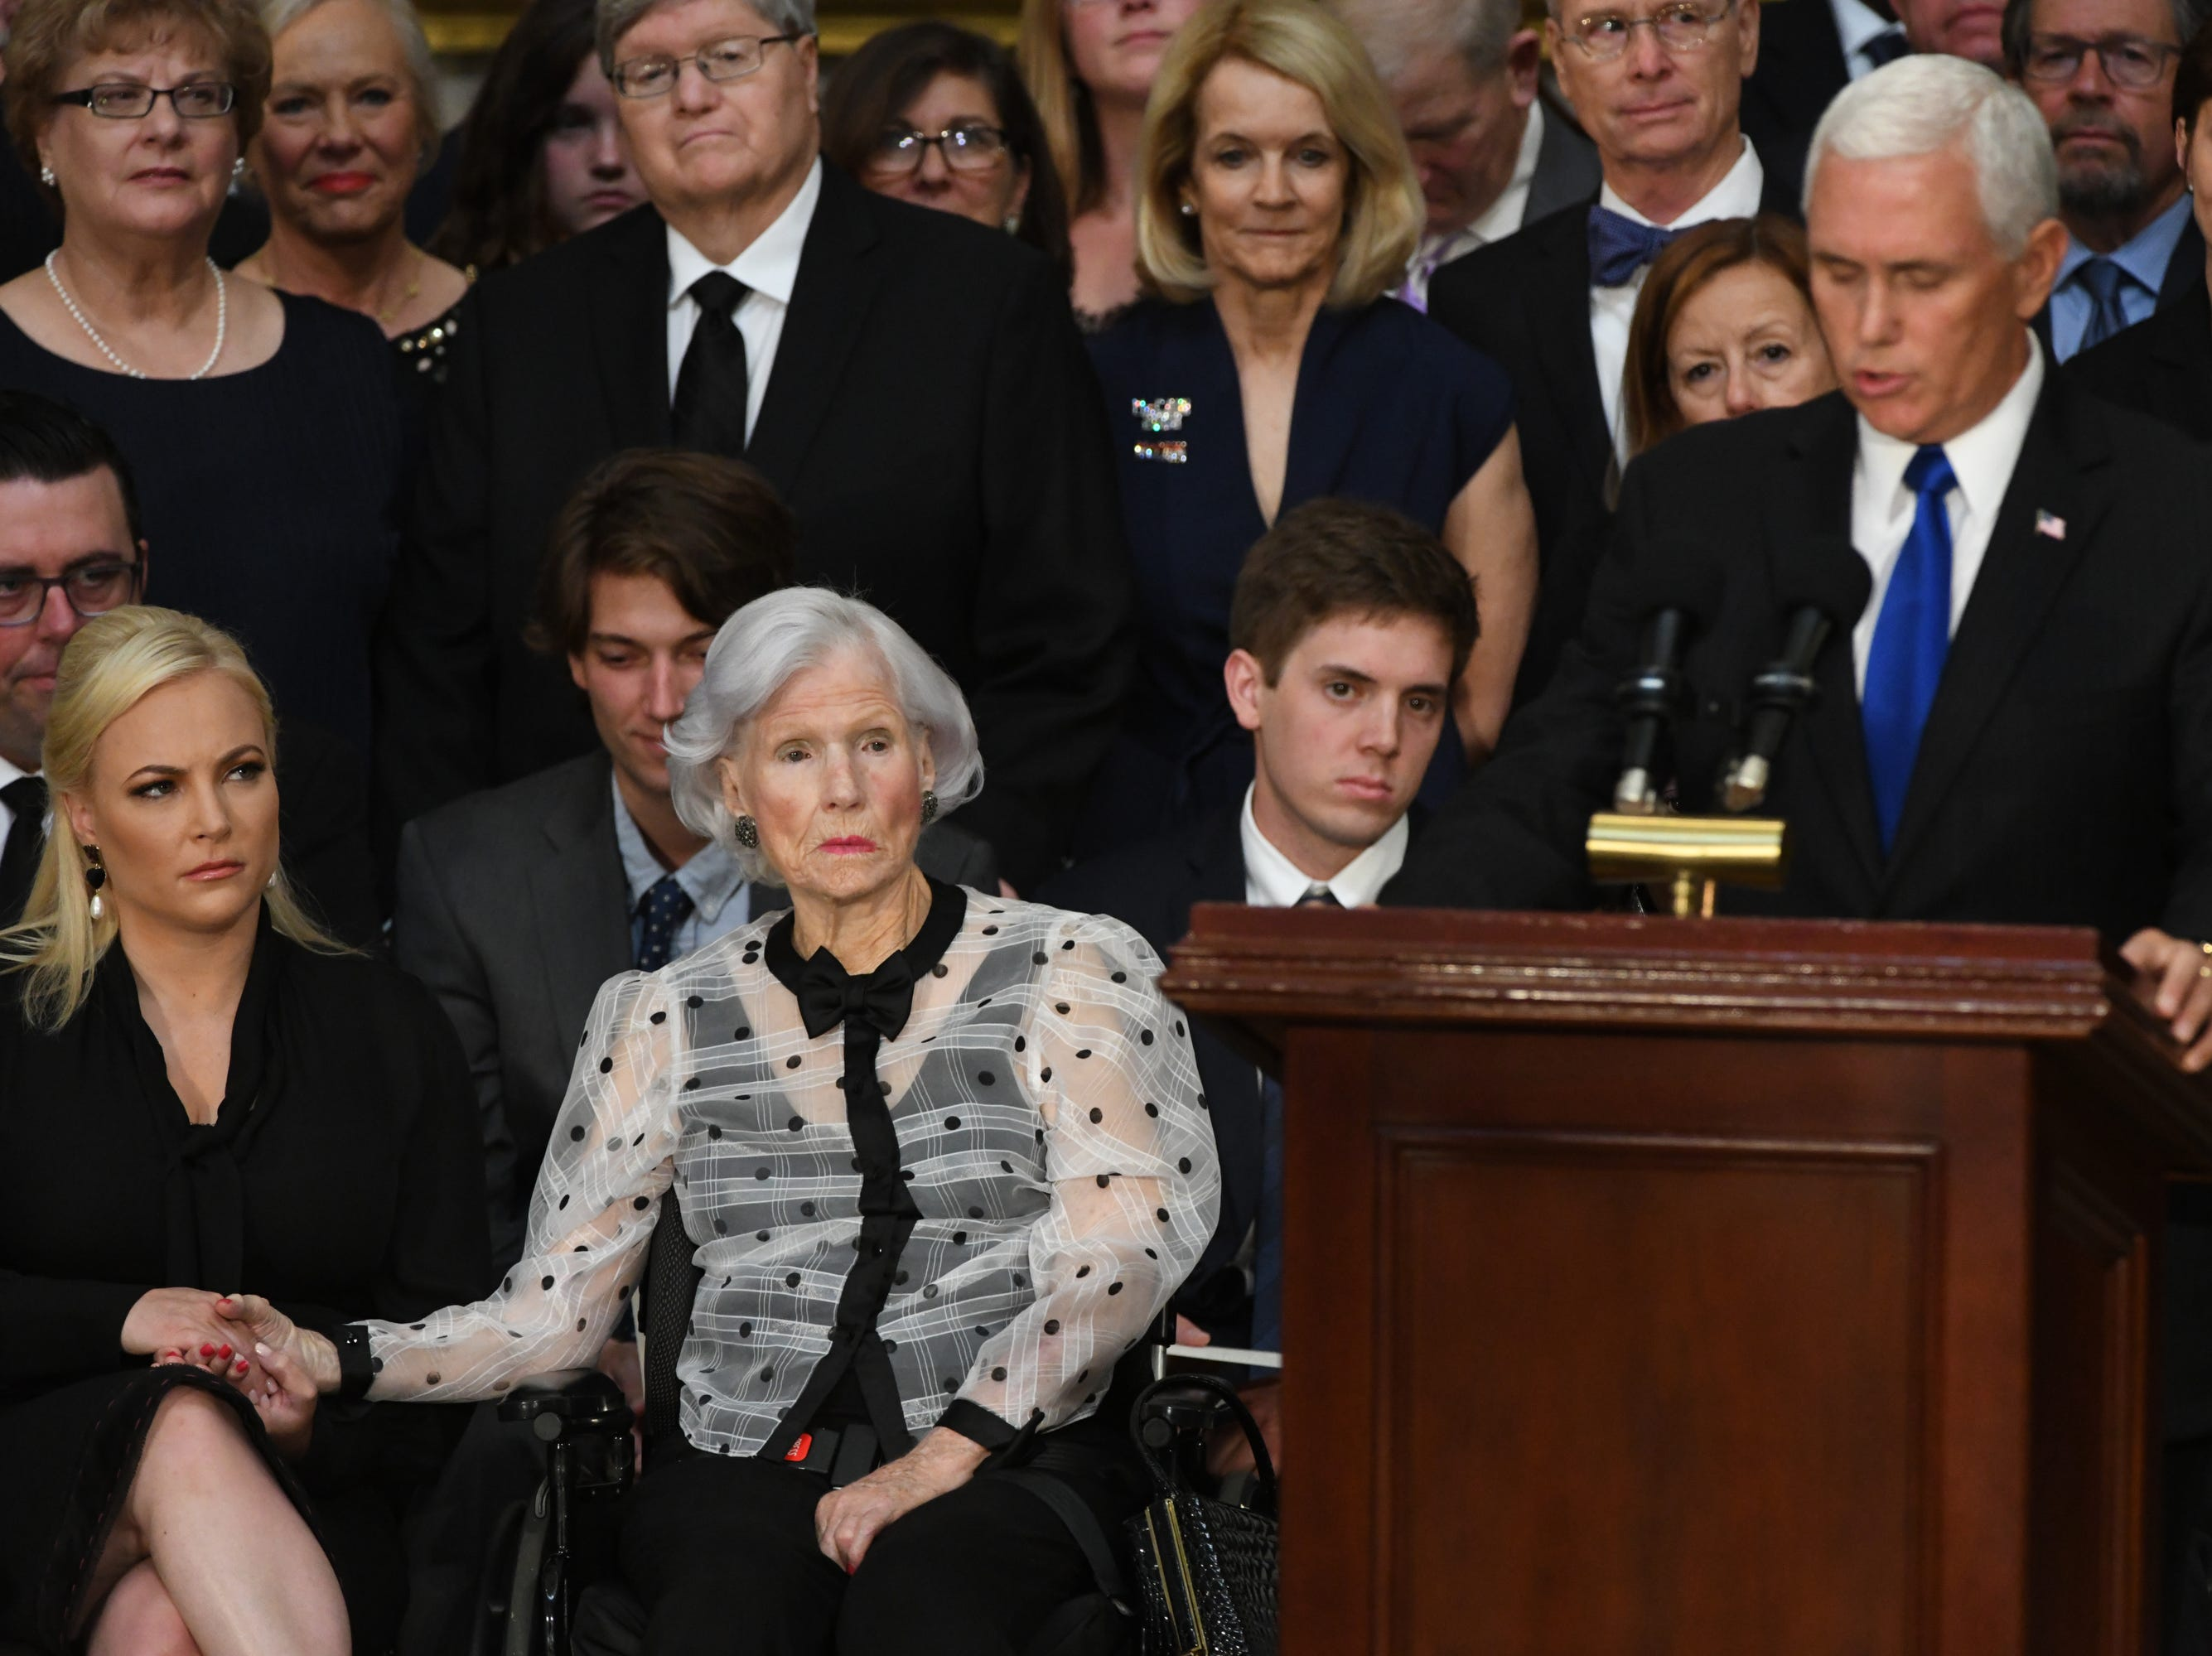 Meghan and Roberta McCain listen as Vice President Mike Pence speaks about the life of Sen. John McCain at the U.S. Capitol in Washington on Aug. 31, 2018.